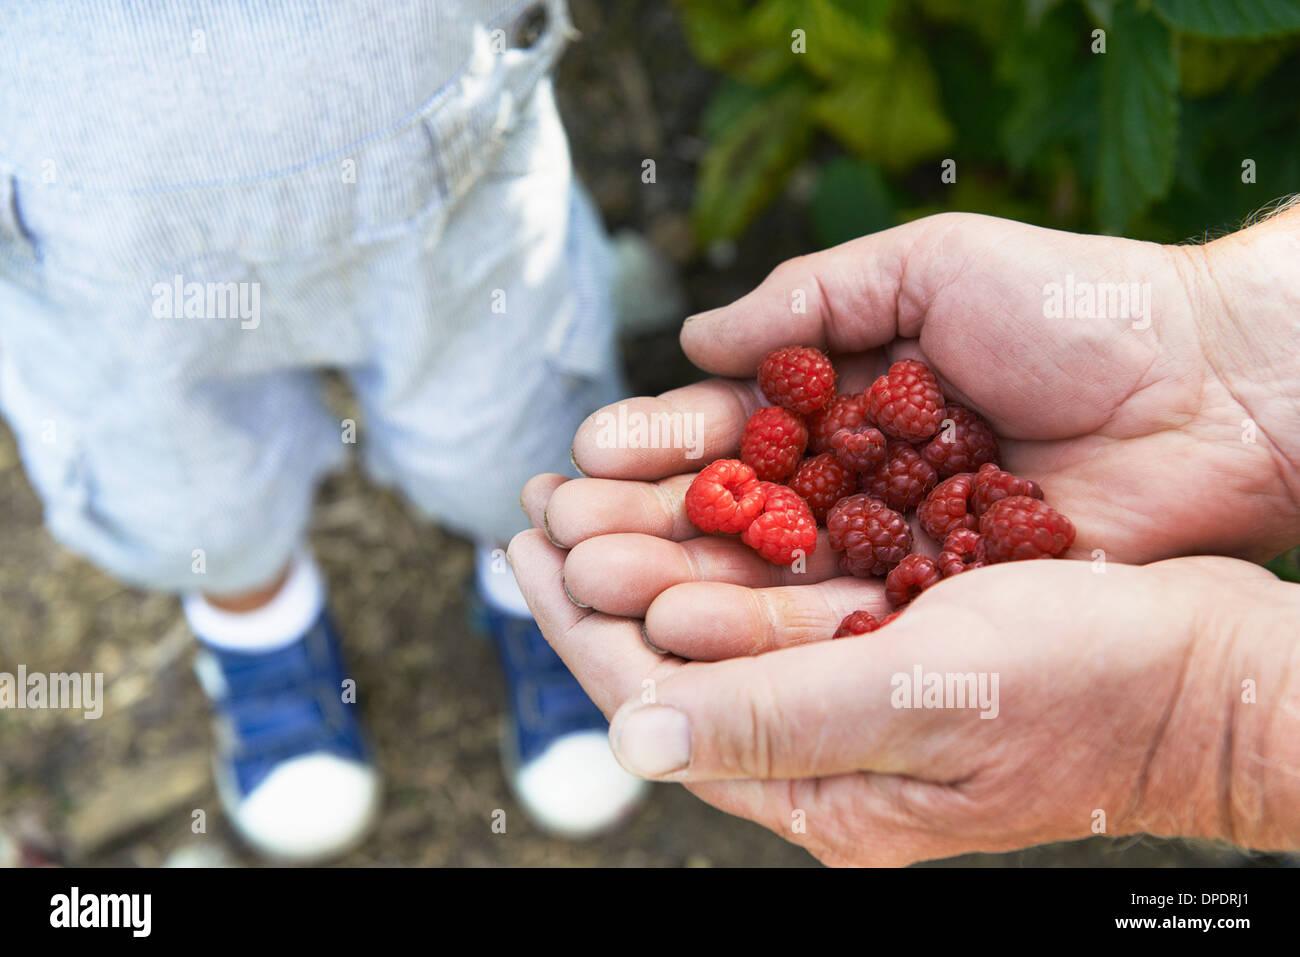 Grandfather sharing raspberries with grandson - Stock Image